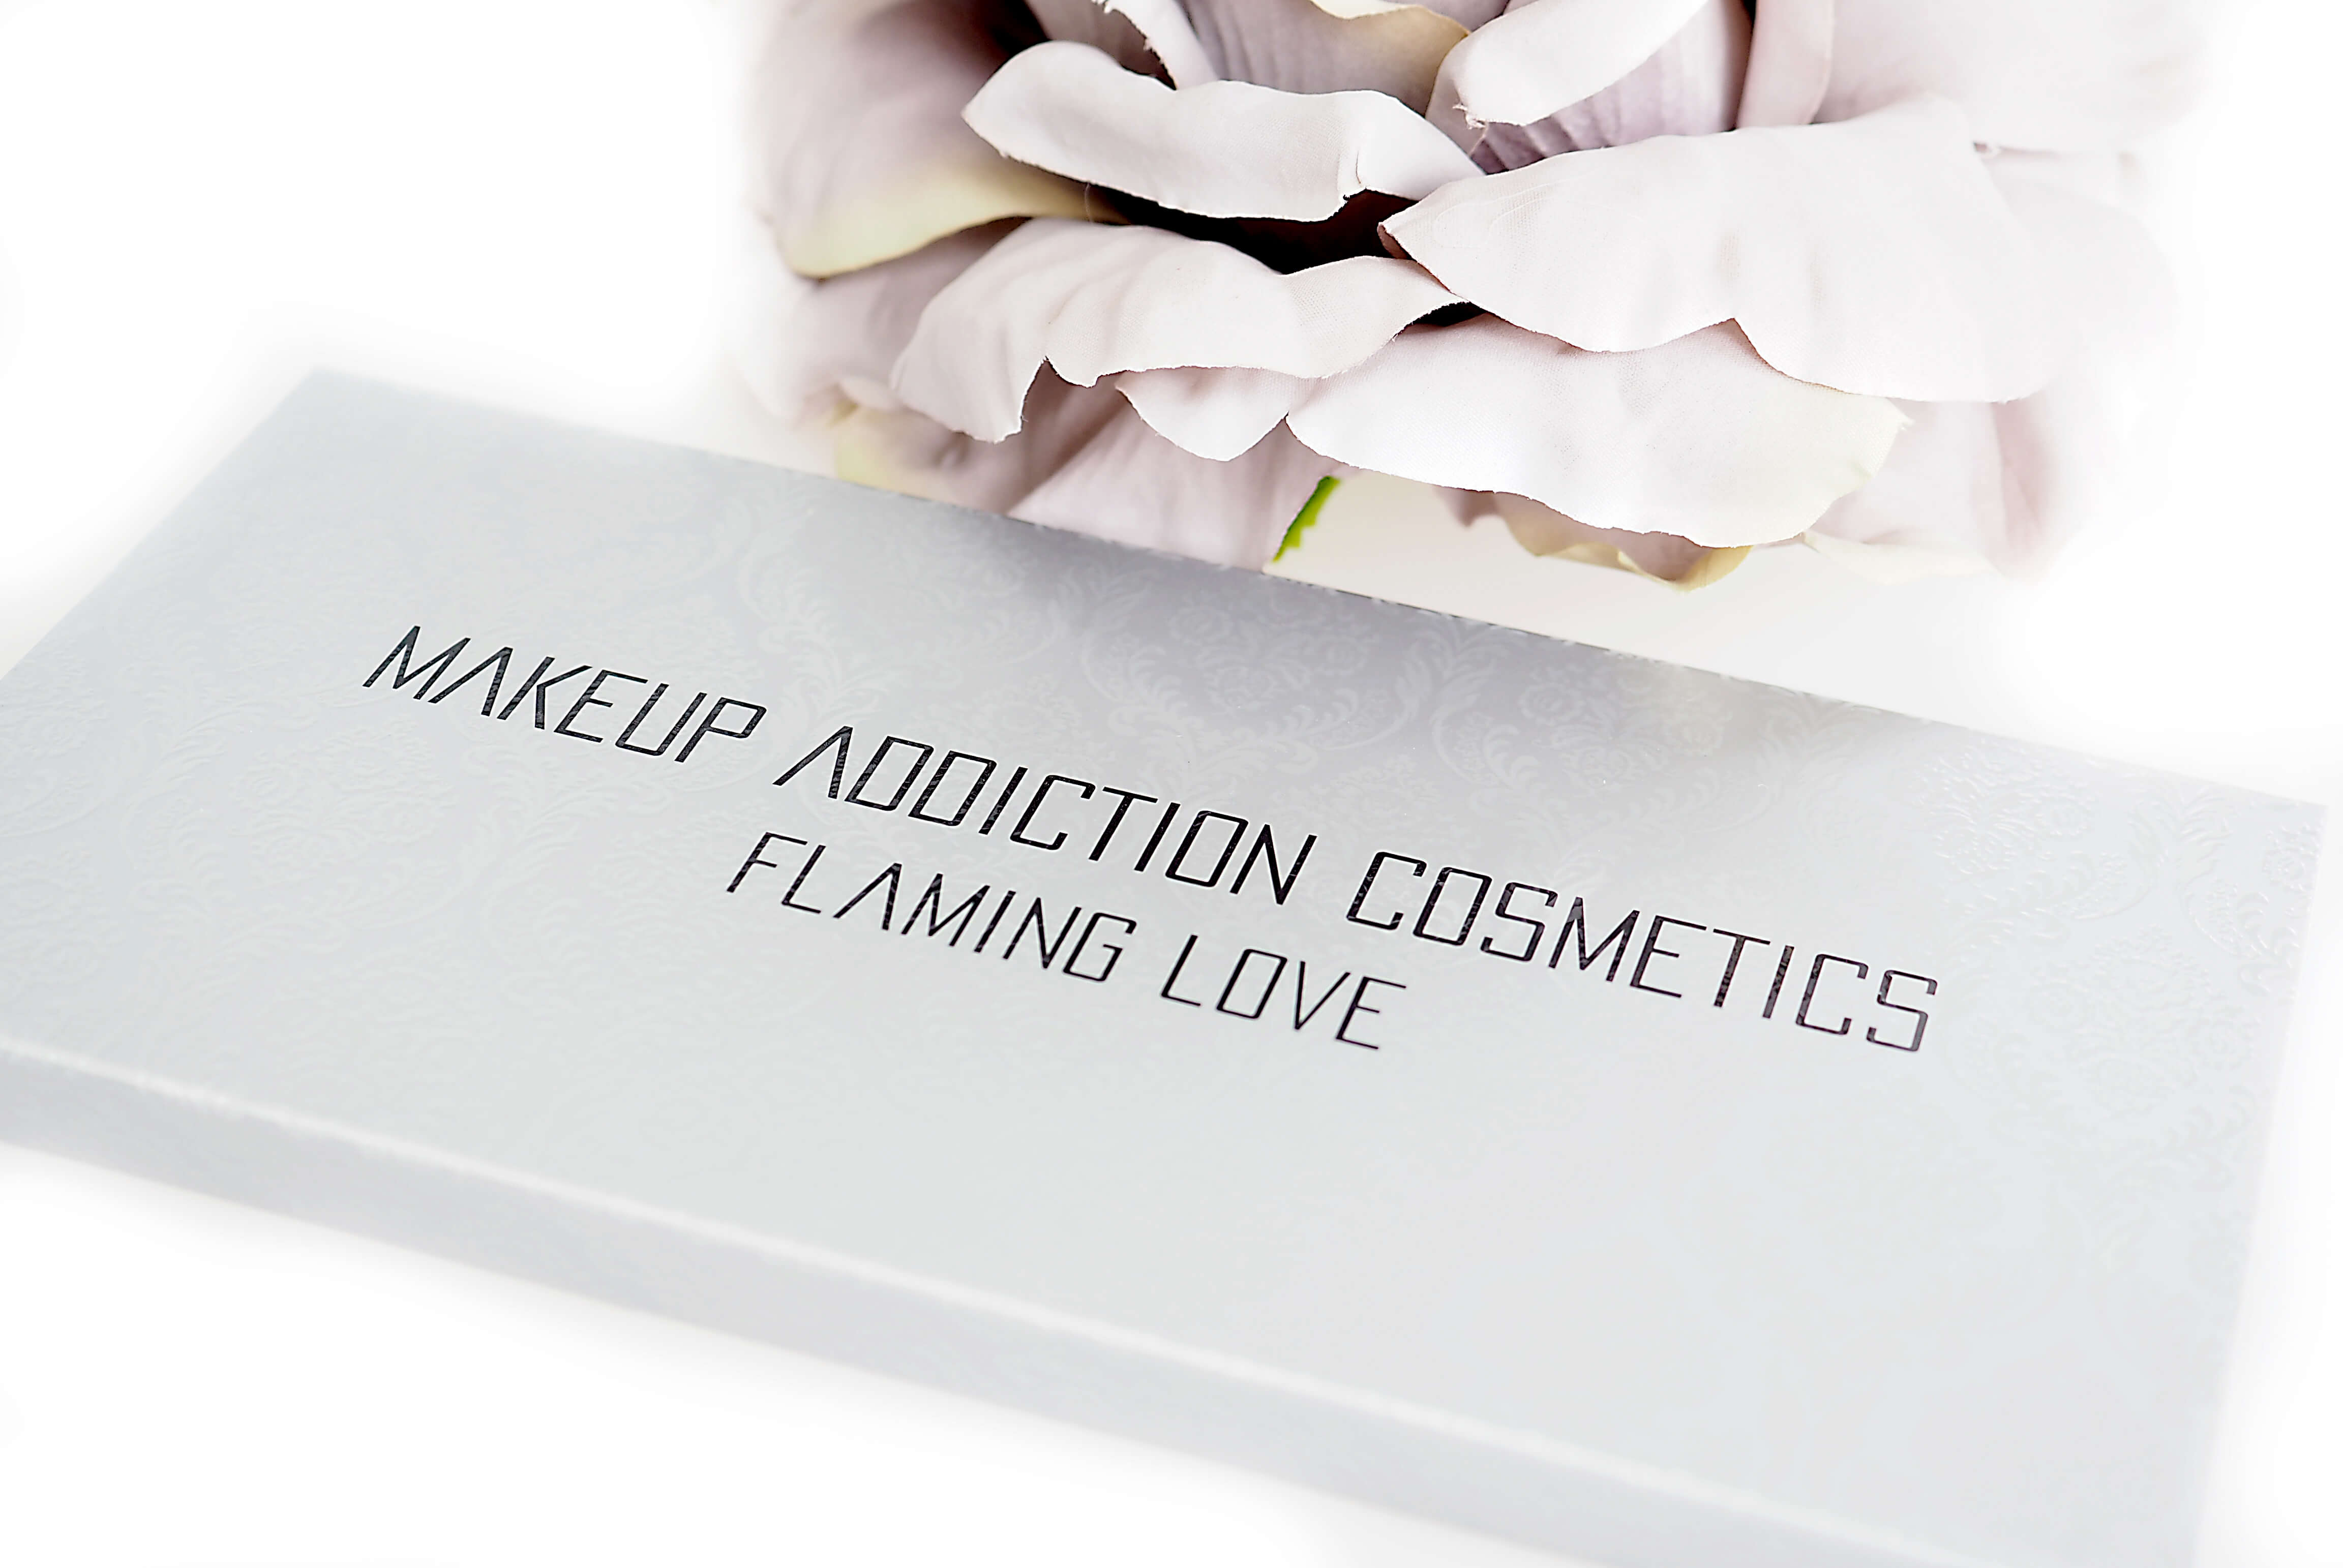 MAKEUP ADDICTION FLAMING LOVE